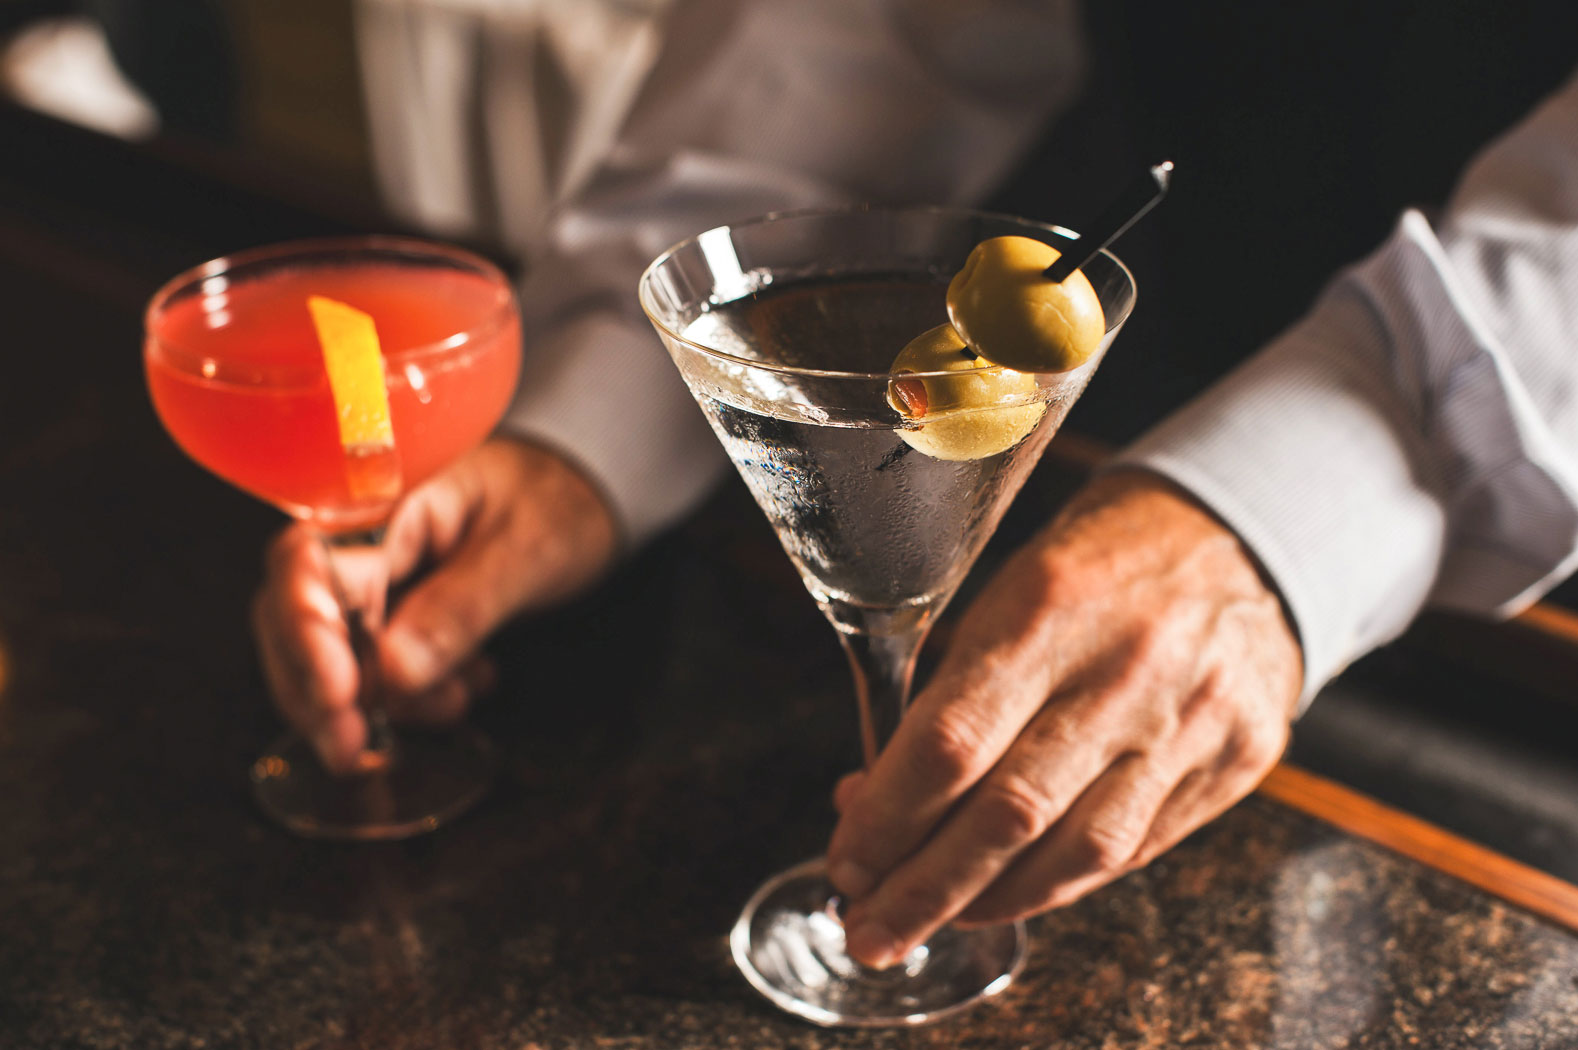 bartender passing a martini and special cocktail across the bar